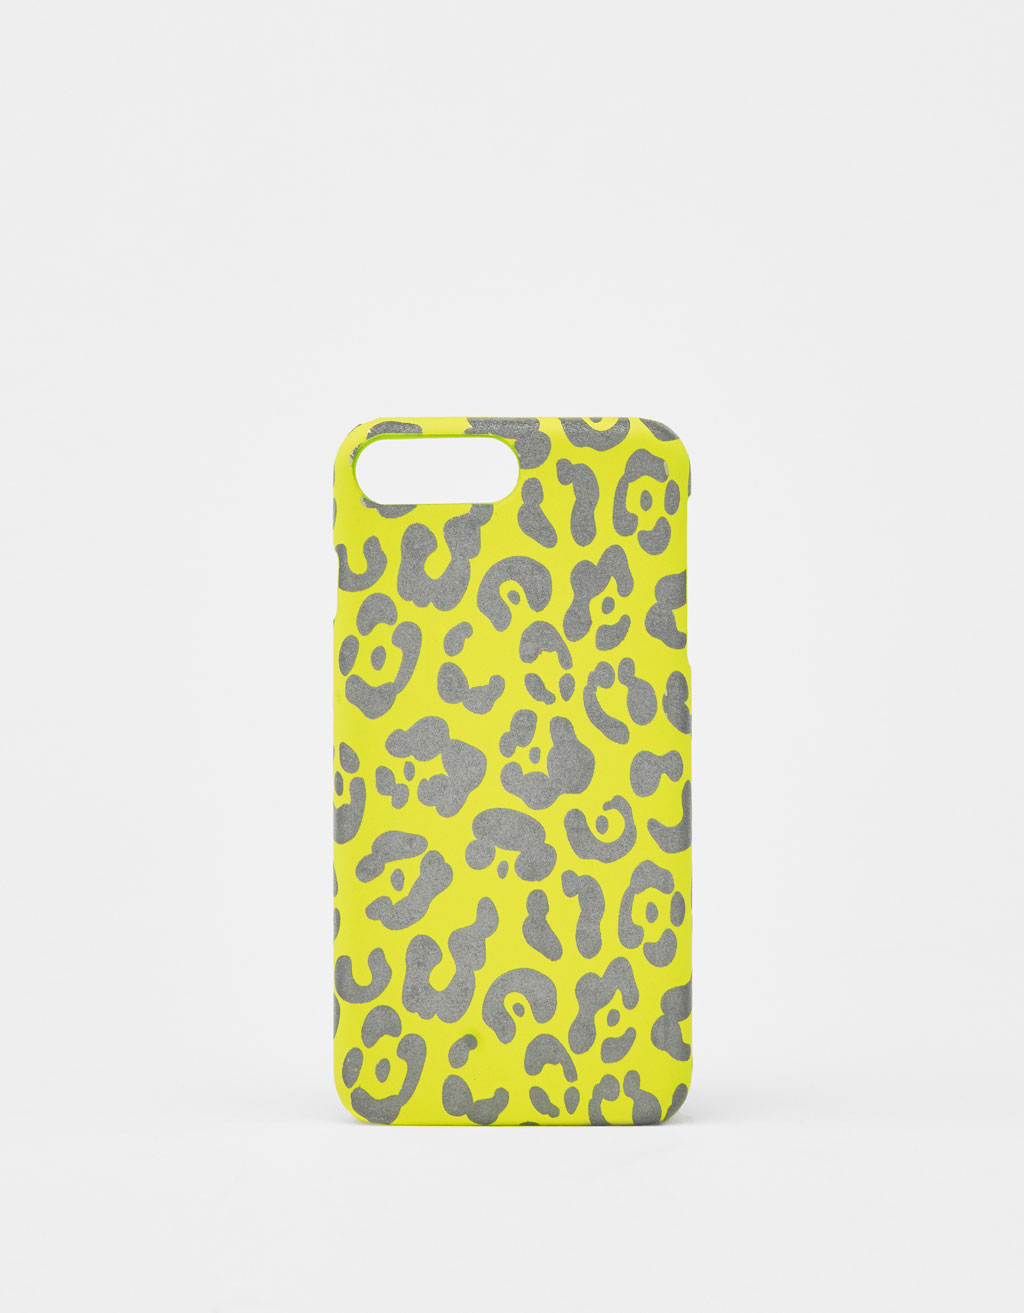 Carcassa lleopard reflectora iPhone 6 plus/7 plus/8 plus